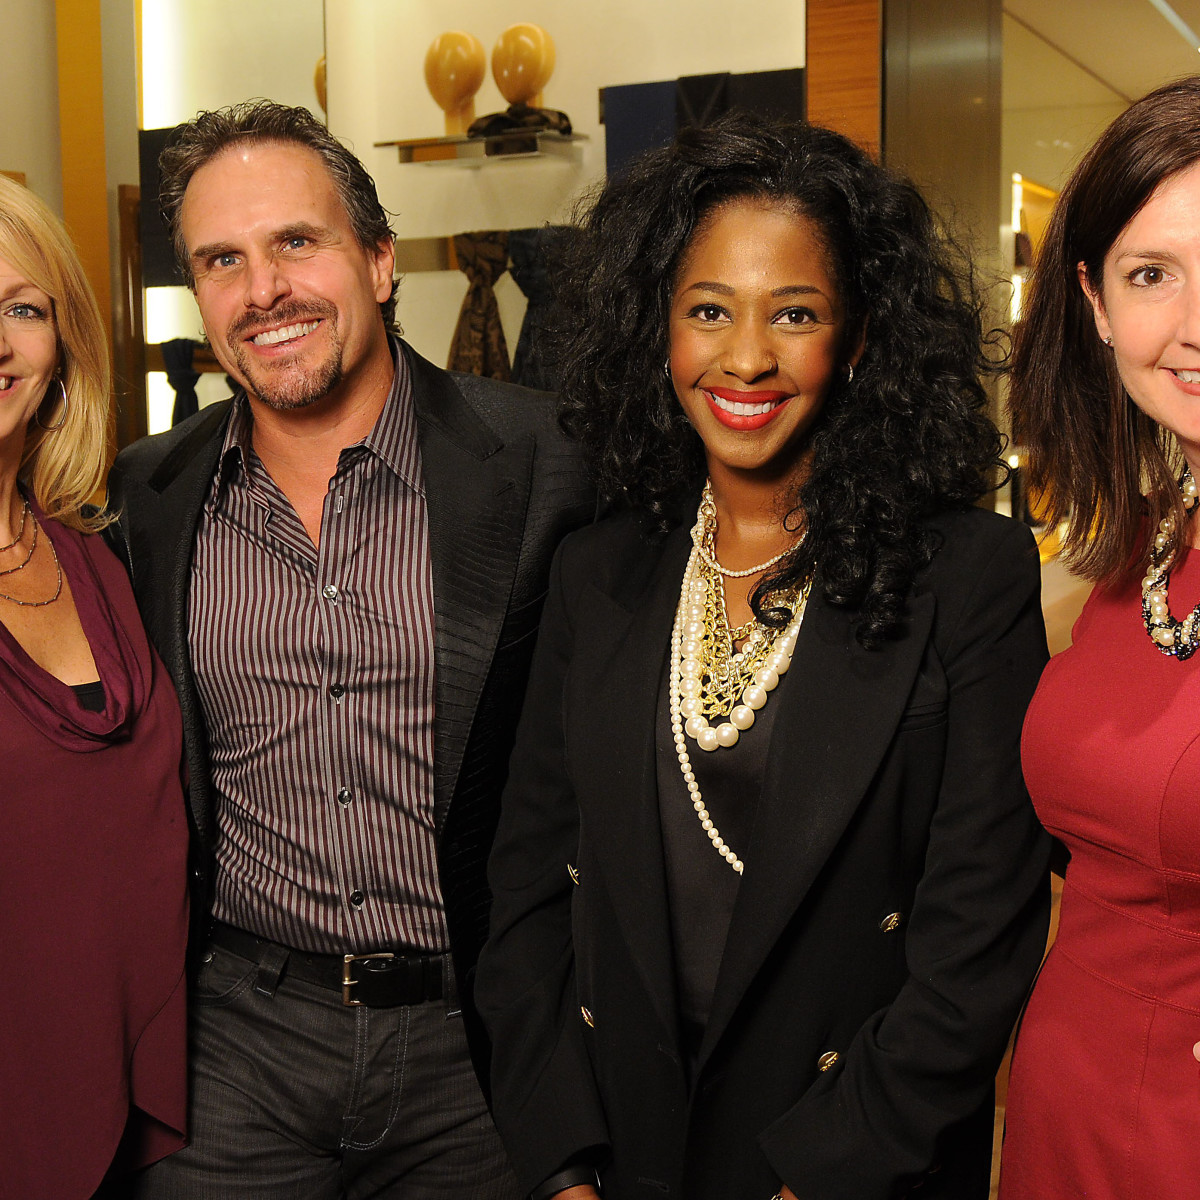 Houston, Louis Vuitton Alley Theatre Salute, September 2015, C.C. Ensell, Duke Ensell, Tanara Landor and Kathryn Straw